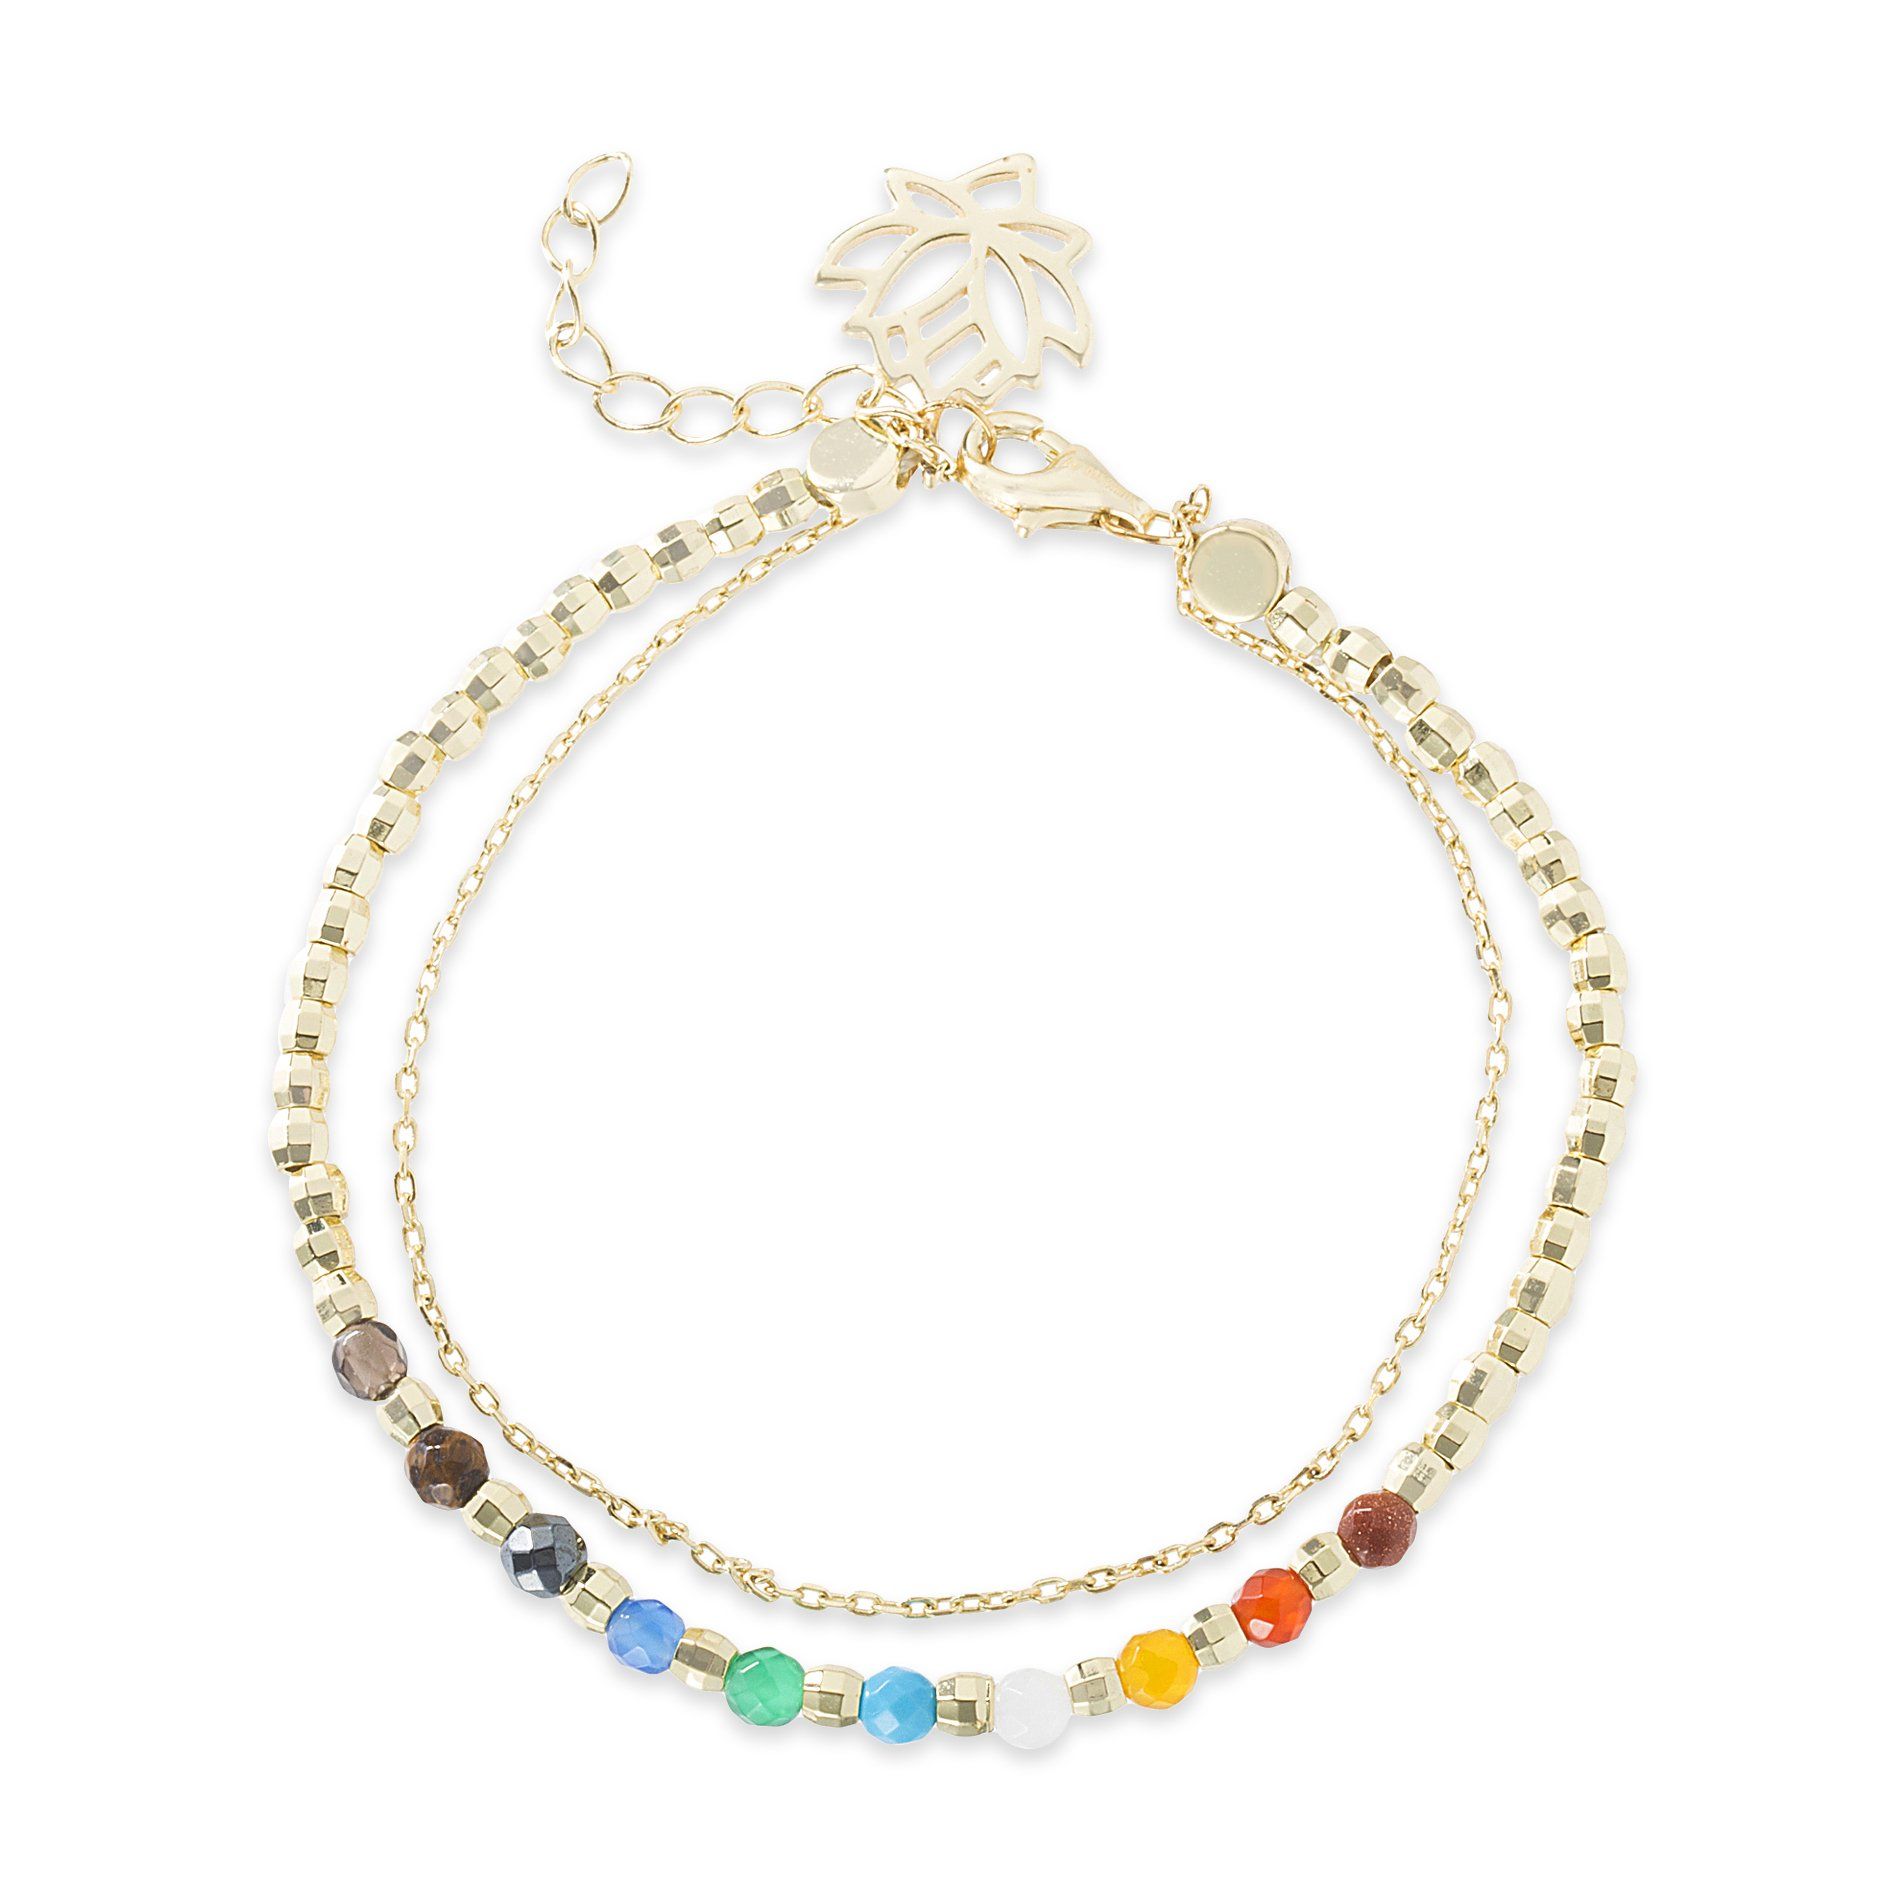 Willowbird Womens Petite 7'' Lotus Flower Charm and Multi Colored Beaded Adjustable Double Layered Bracelet in Yellow Gold Plated Sterling Silver